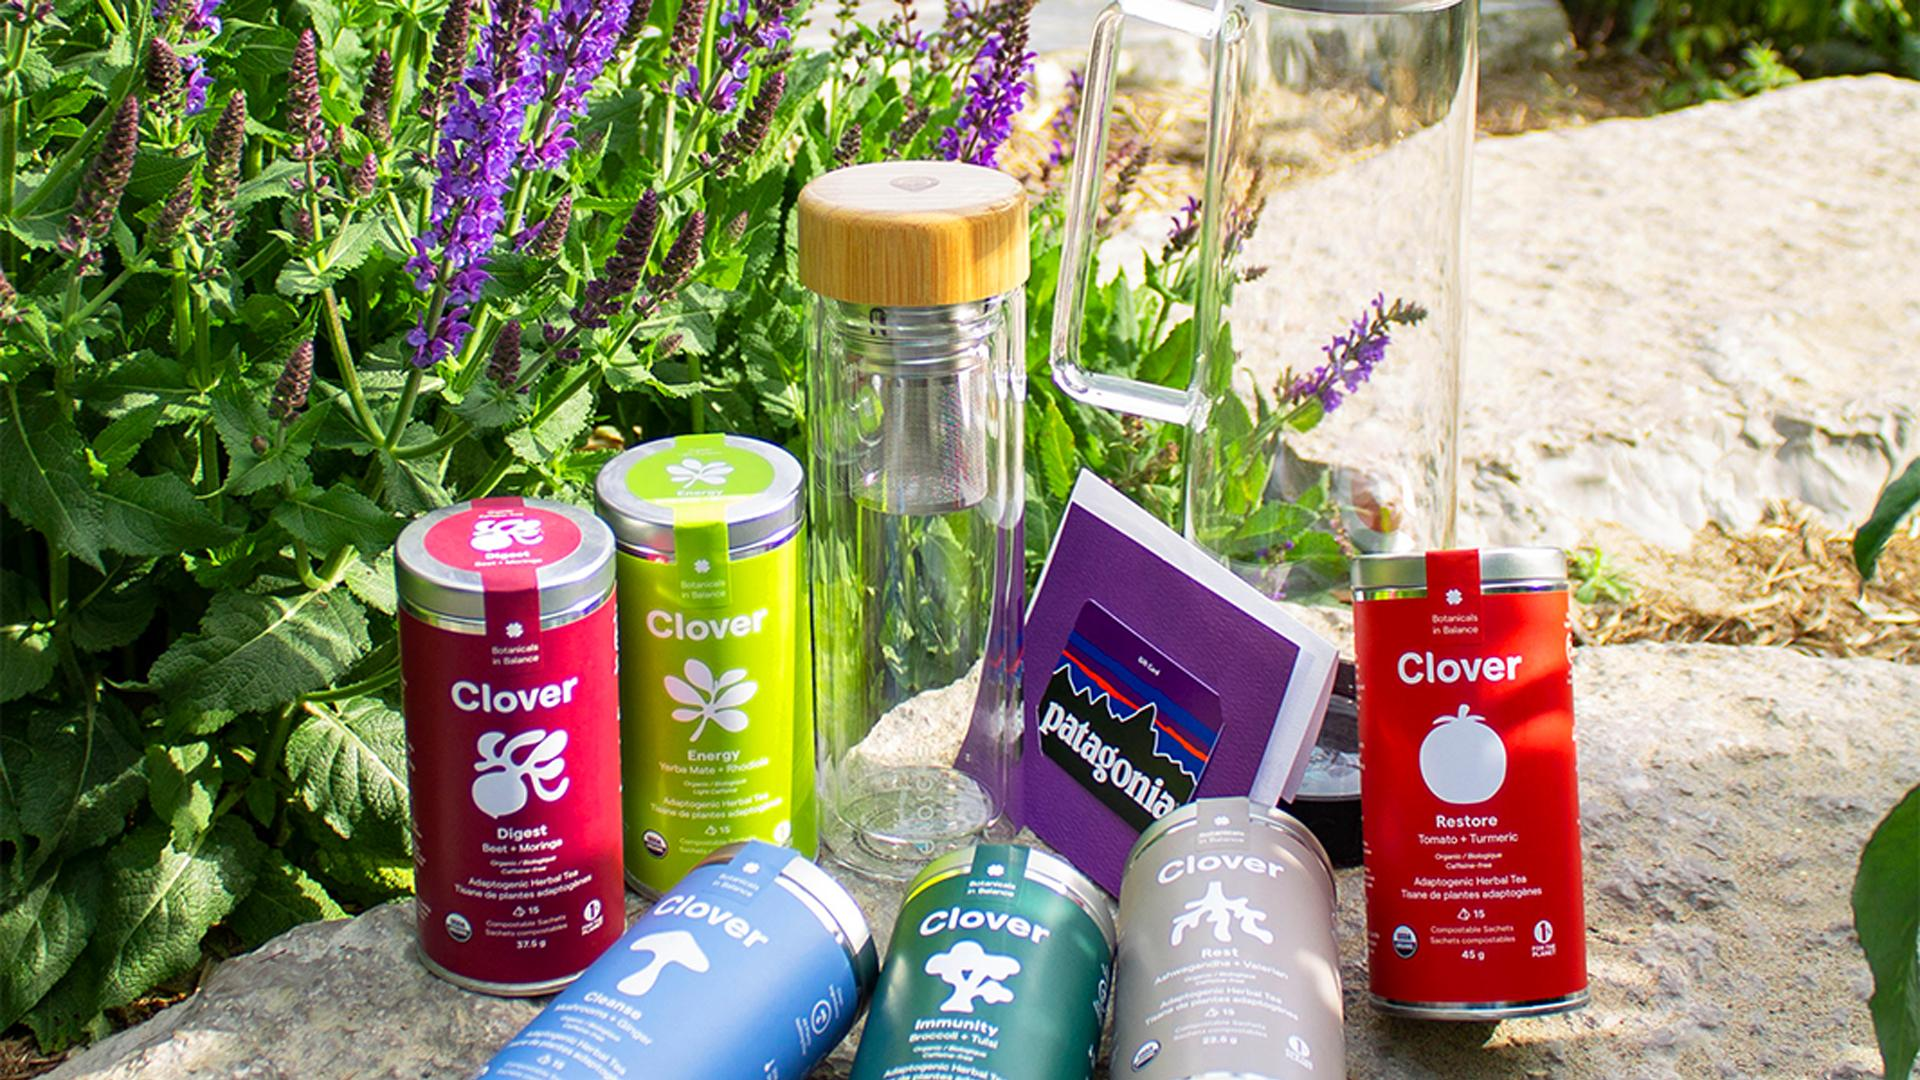 Win a super tea and healthy lifestyle prize pack | Clover Botanicals super tea, Grosche water bottles and a Patagonia gift card